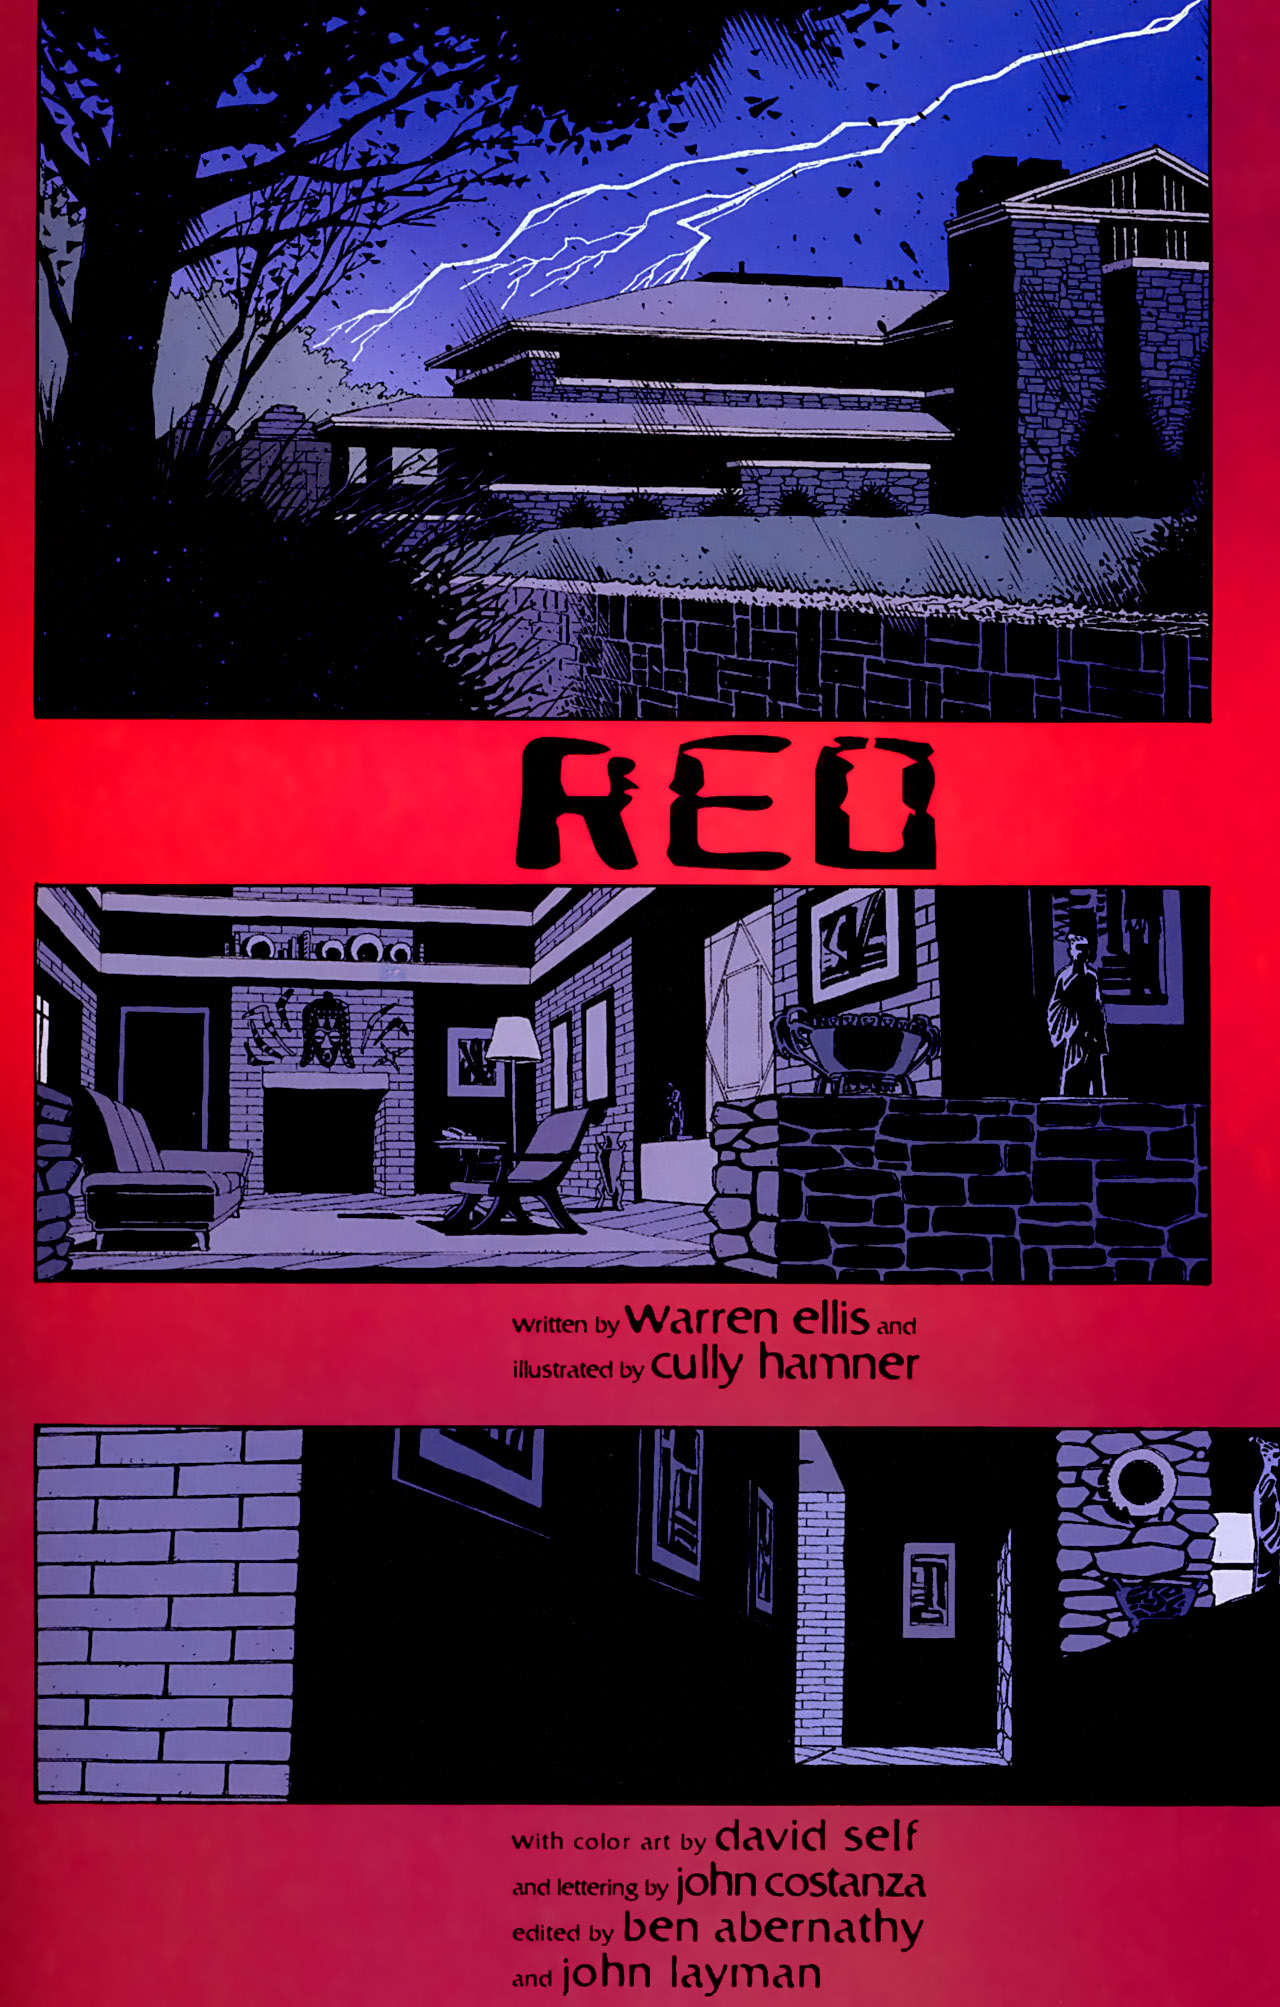 Read online Red comic -  Issue #1 - 7